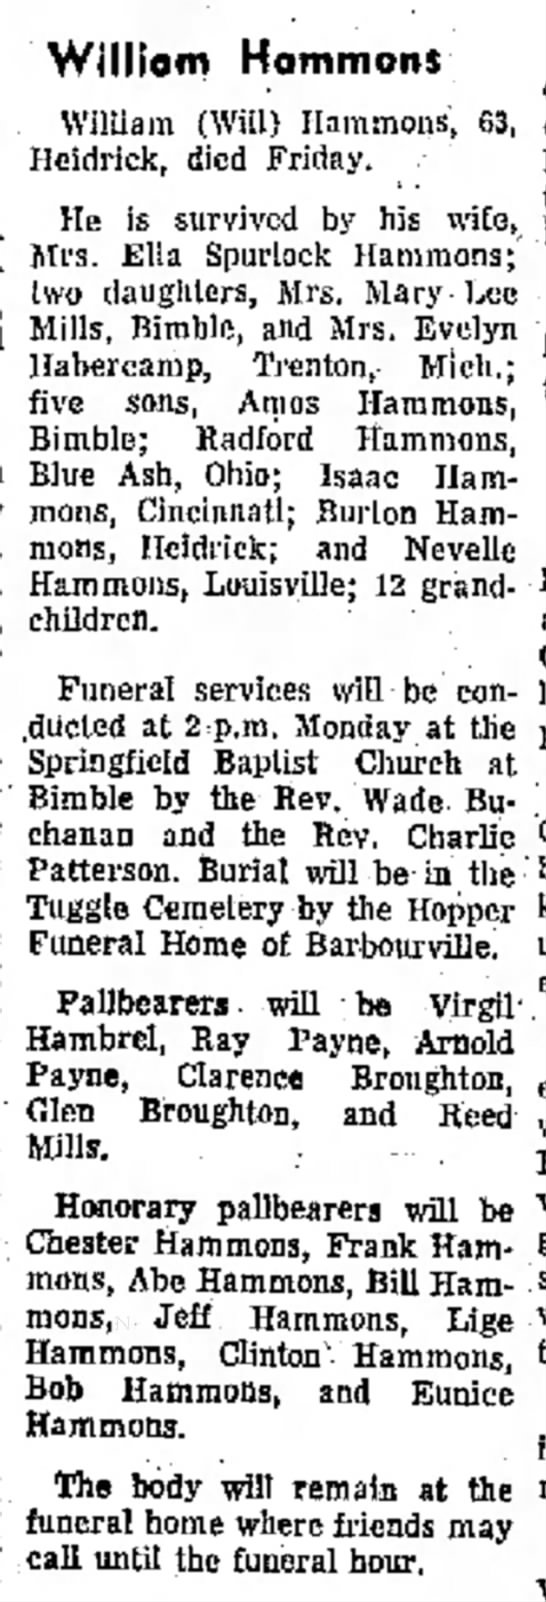 William will Hammons of Heidrick obit 21 Dec 1969 born 1906 -